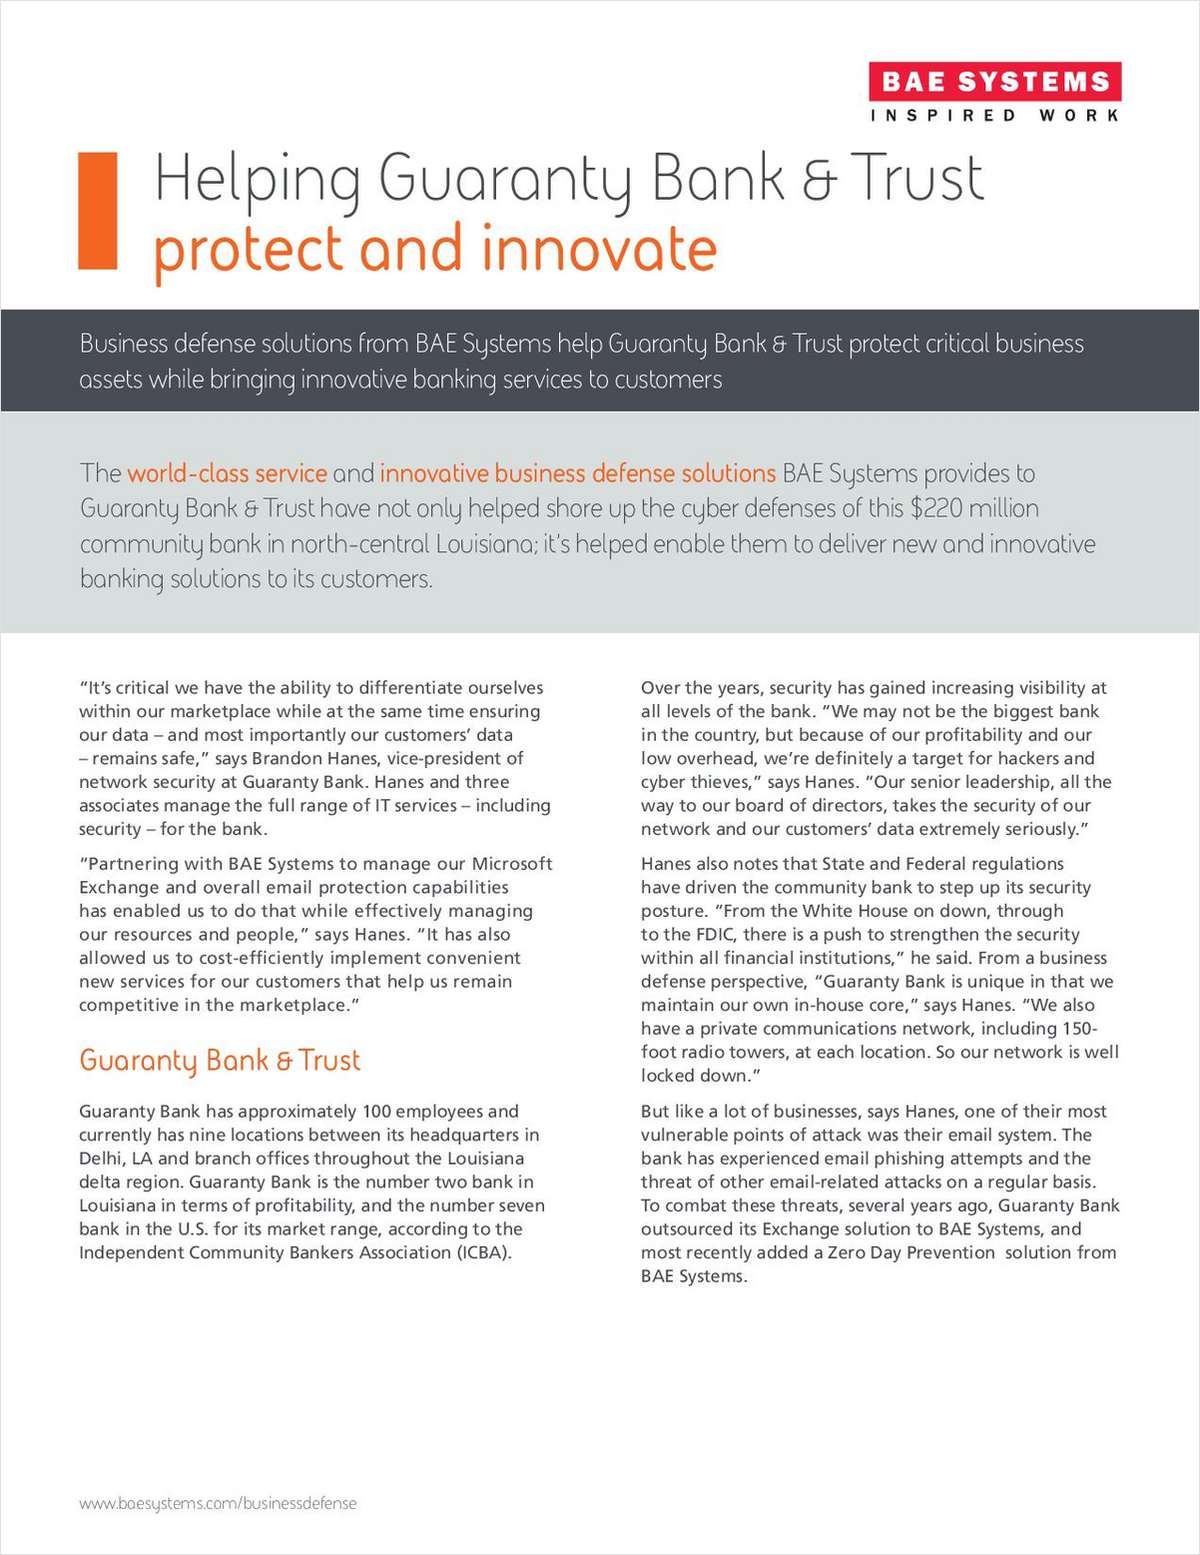 Helping Guaranty Bank & Trust Protect and Innovate